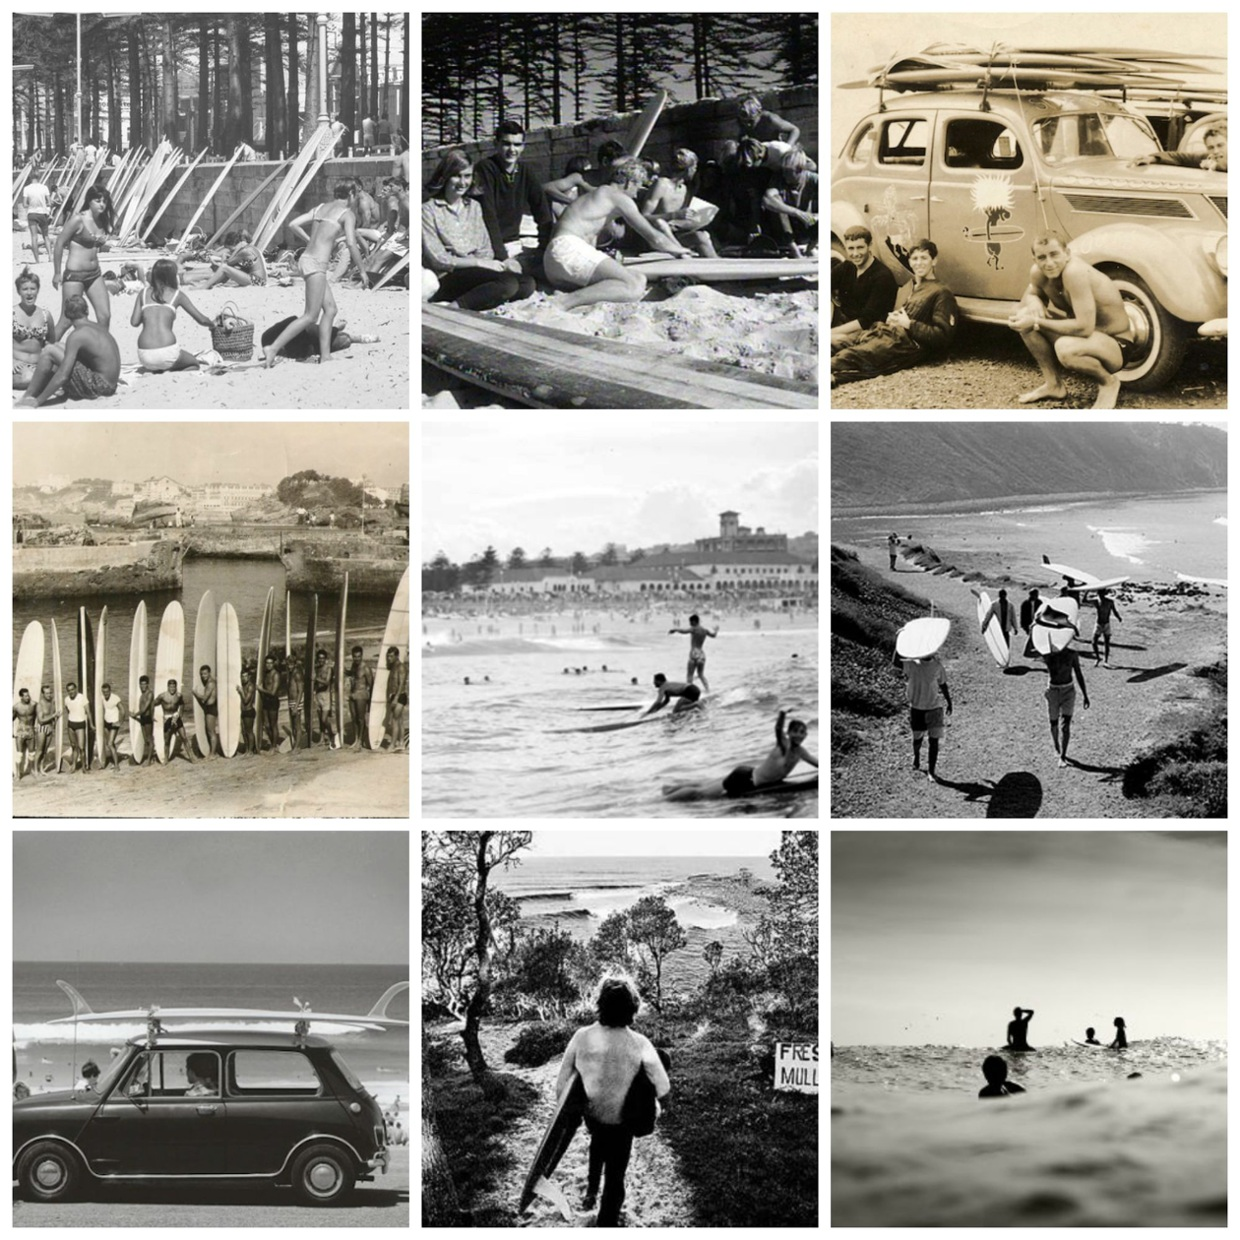 1960s Surf Trips Down South: Surf Culture In 1960's